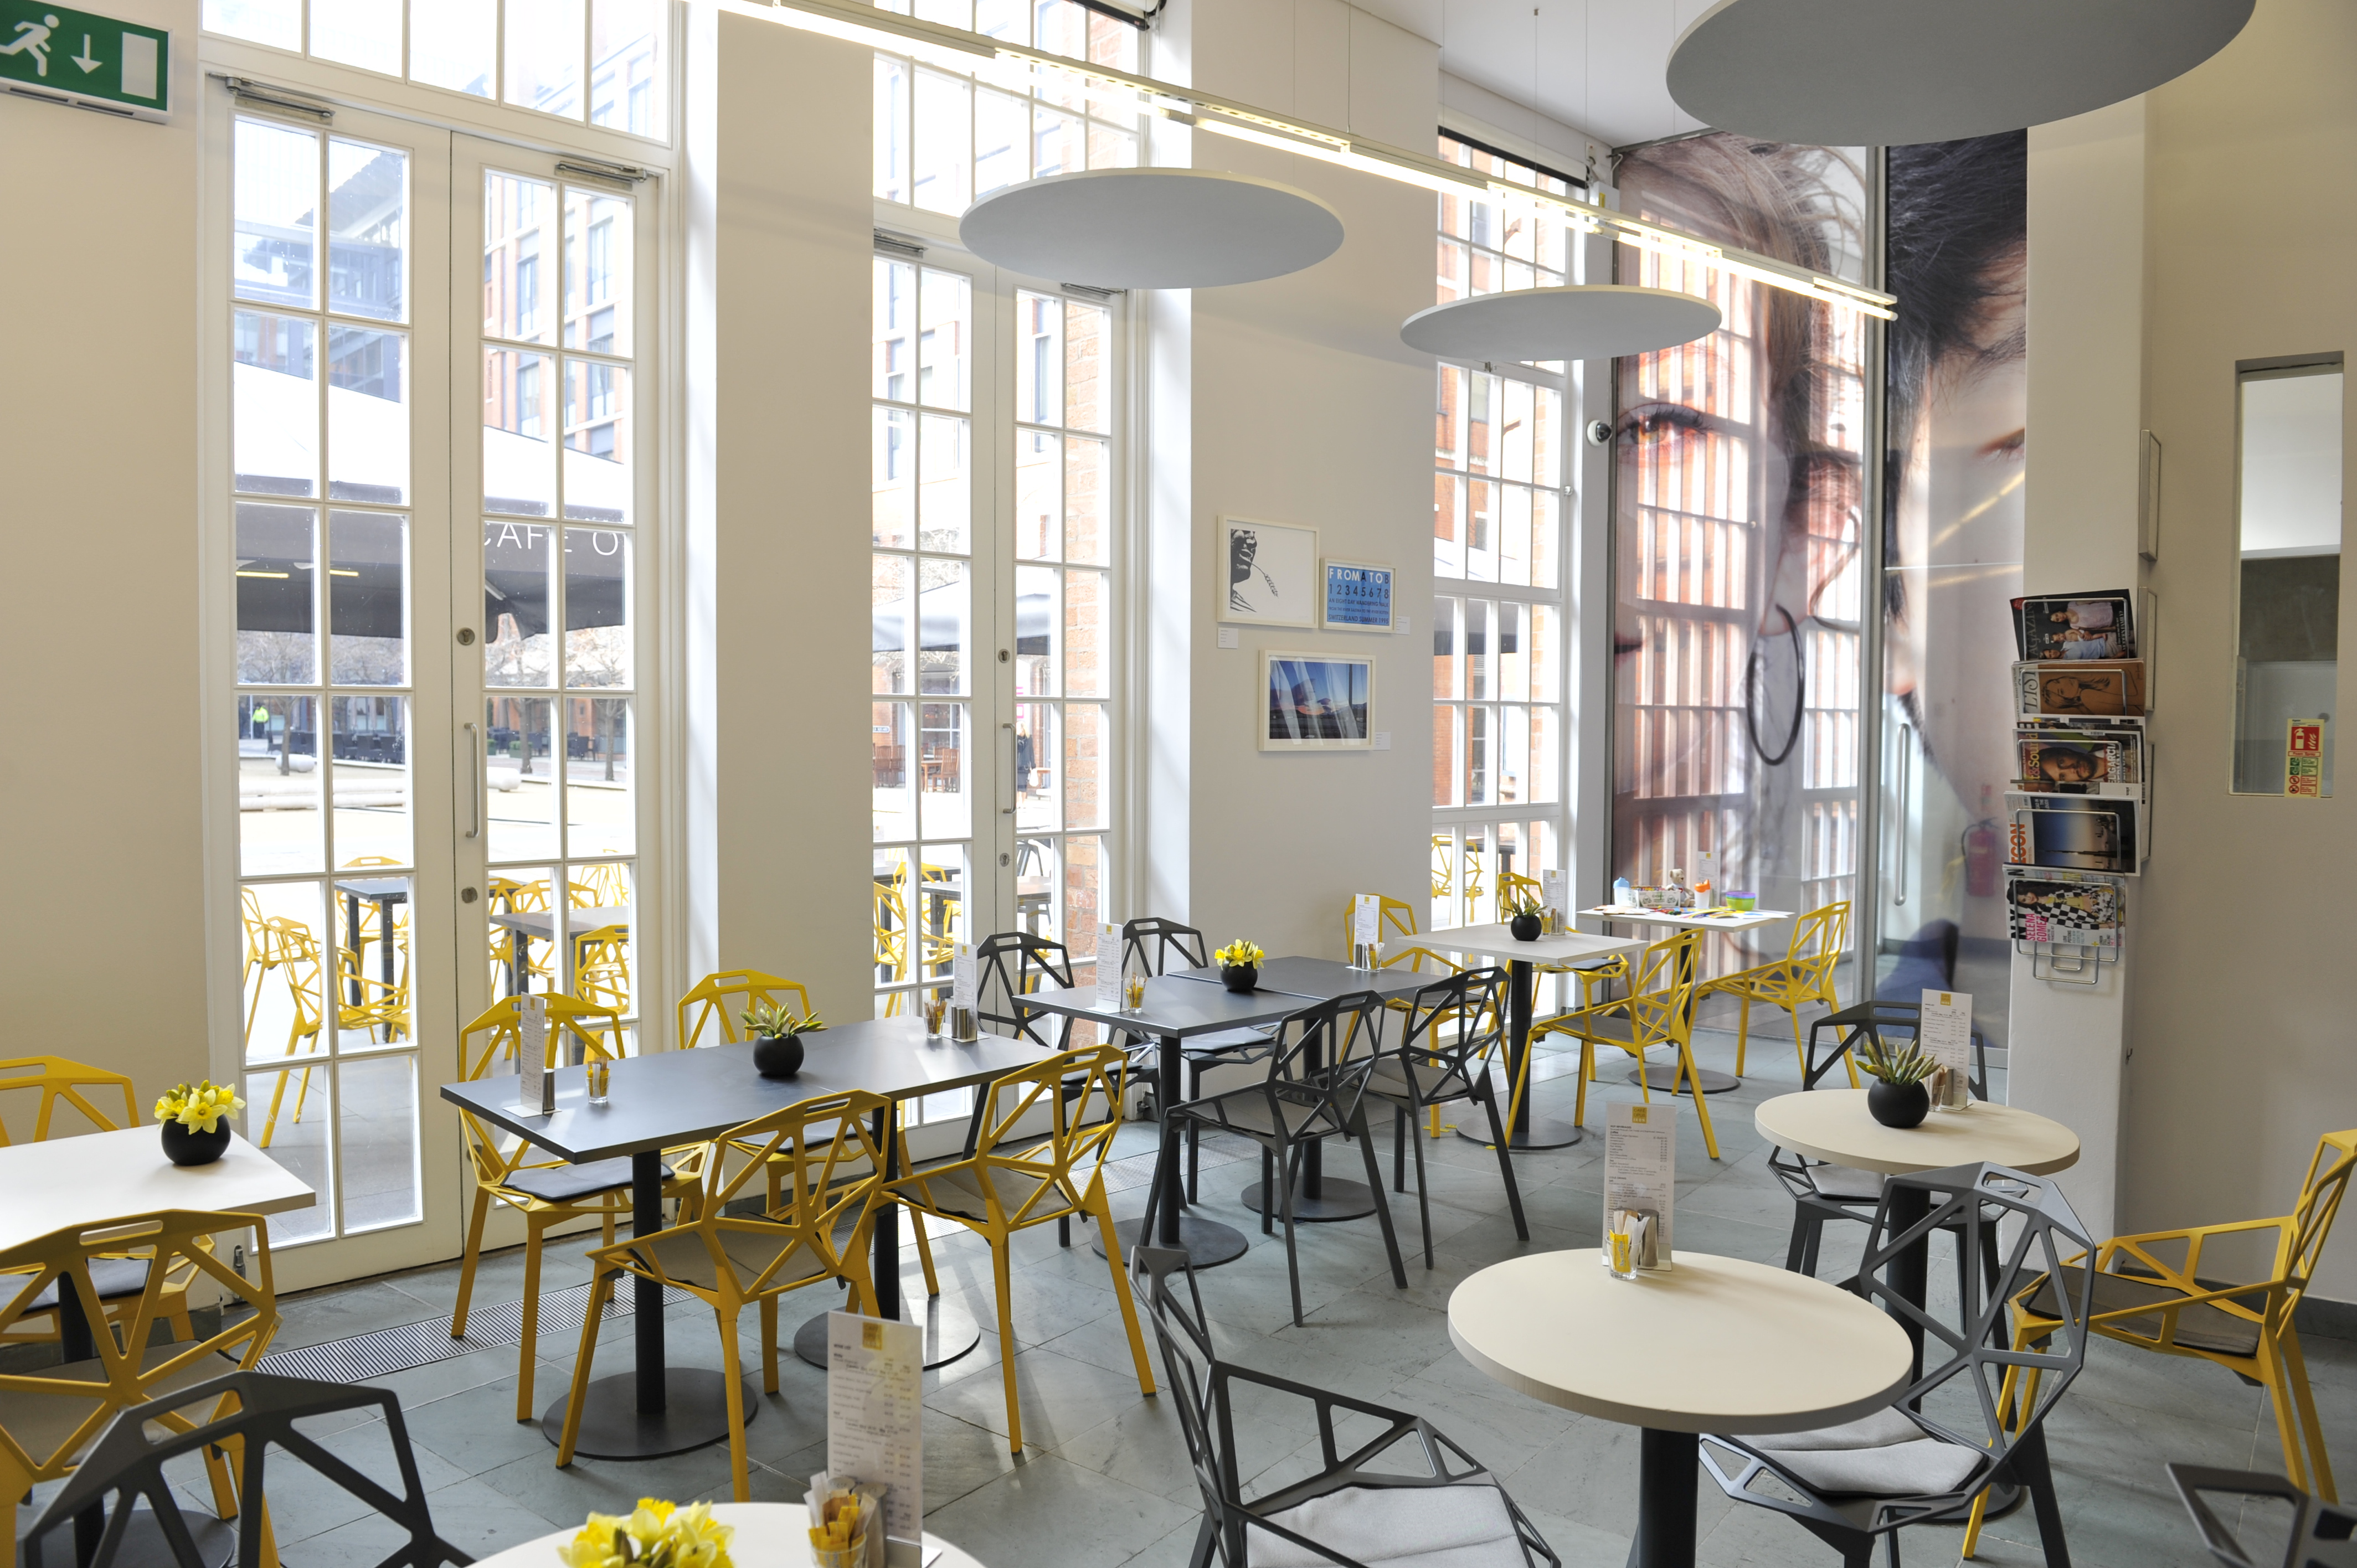 The now Cafe Opus at the Ikon Gallery in Birmingham, UK.